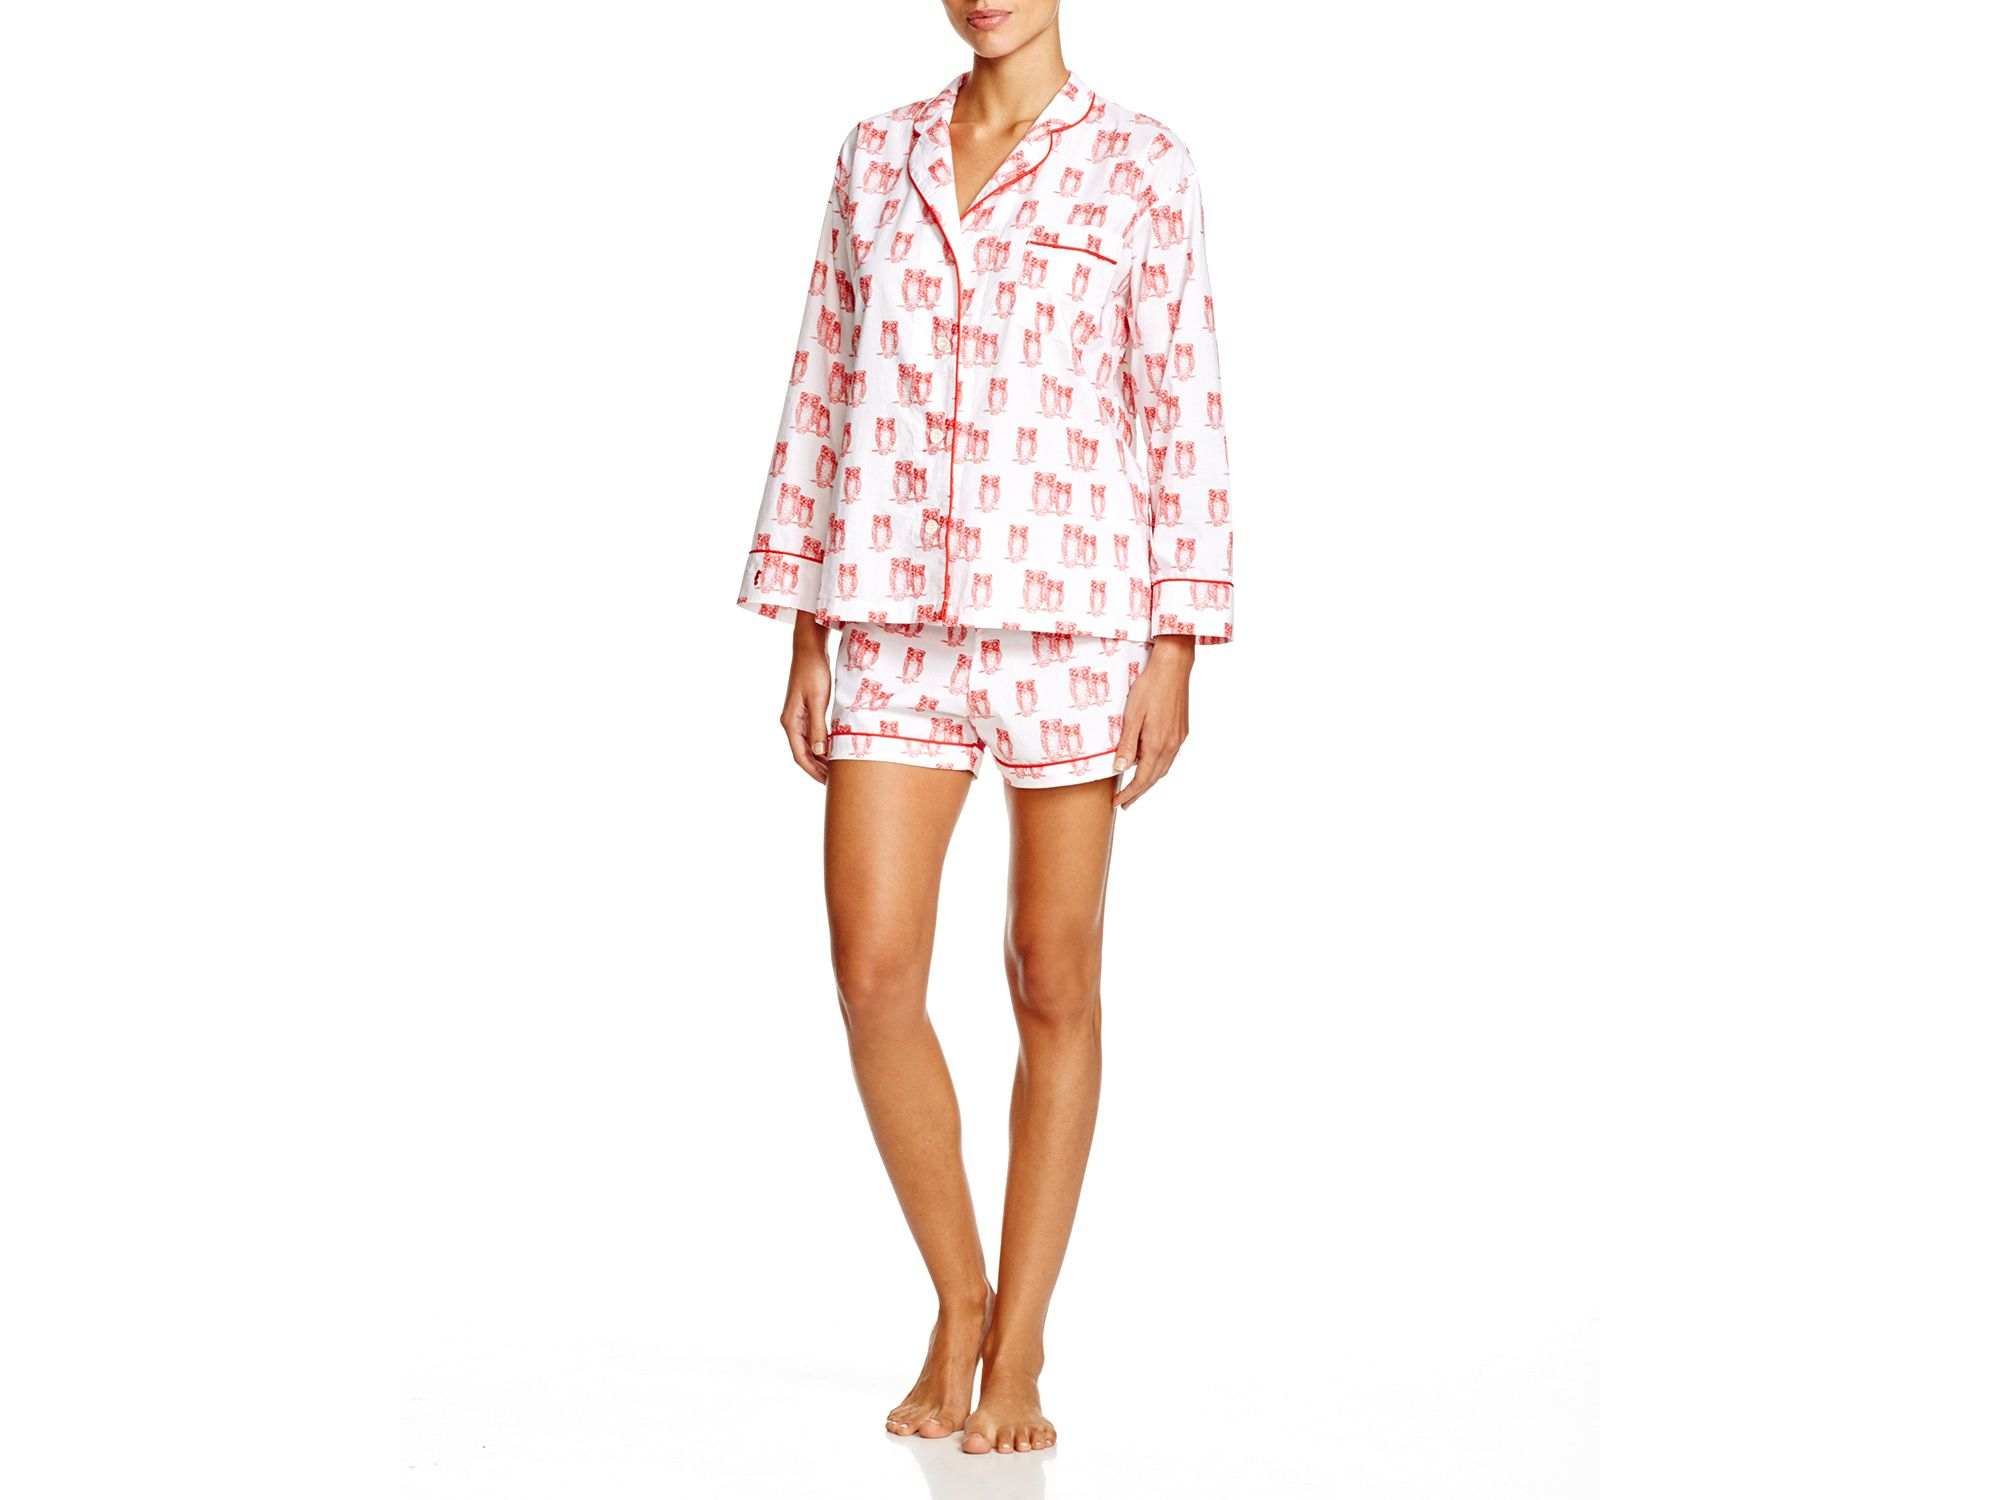 Lyst - Marigot Collection Marigot Tomato Owl Short Pajama Set in Red 981a29c67